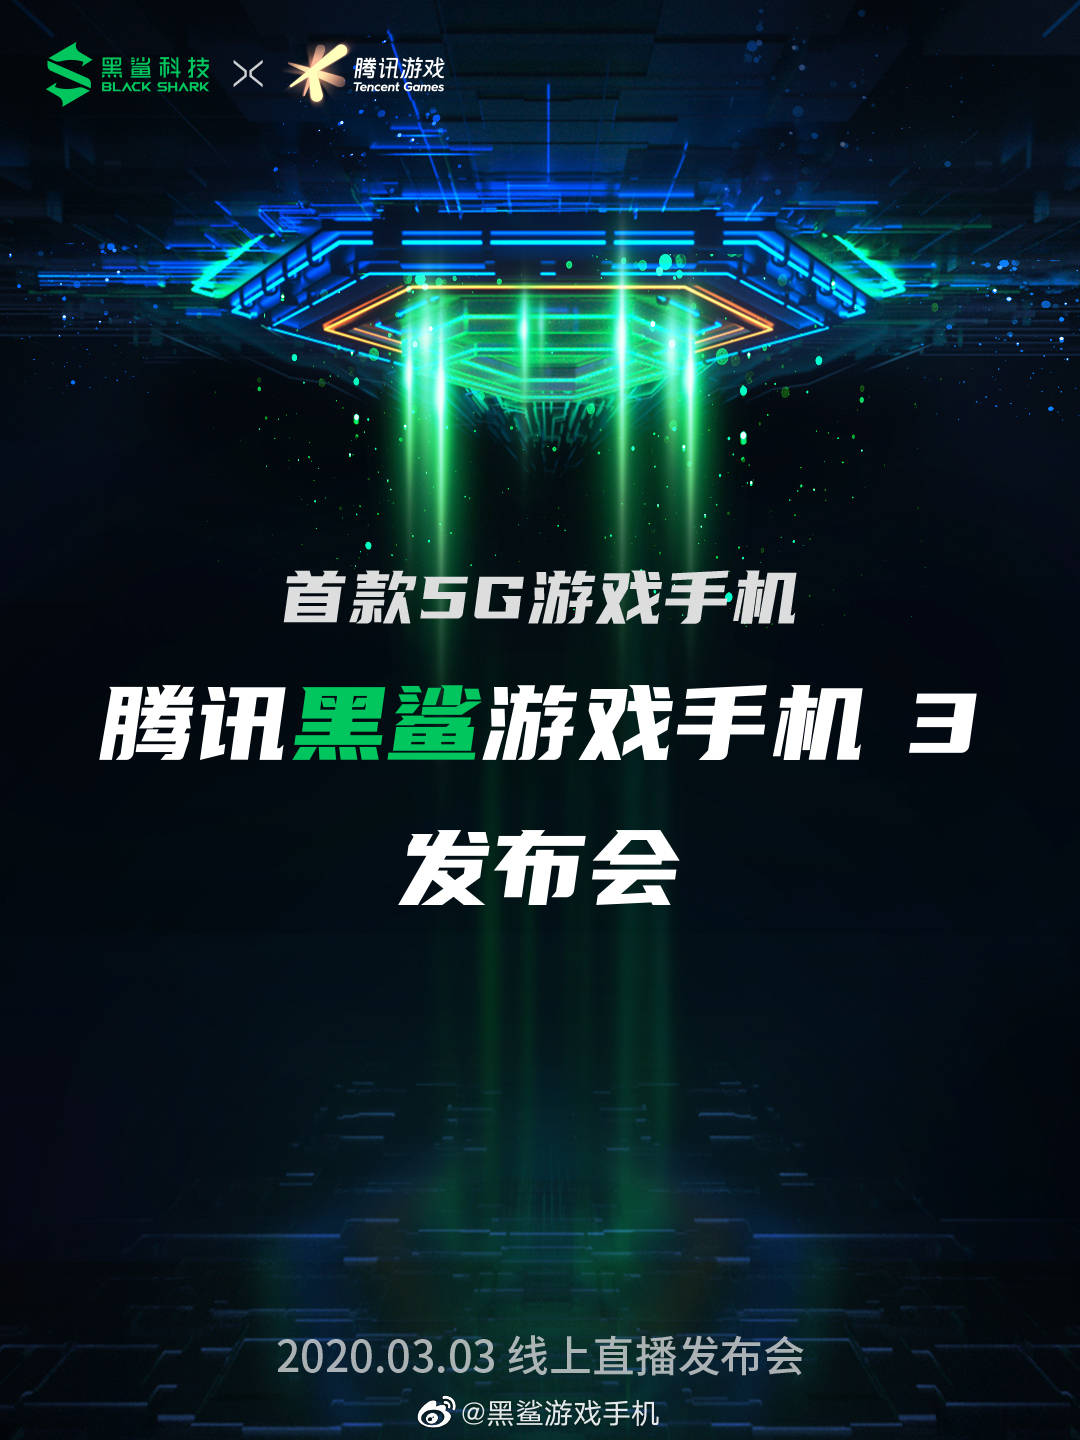 The new Black Shark 3 already has a presentation date. This is all we know about the gaming smartphone that will compete in performance against the Xiaomi Mi 10